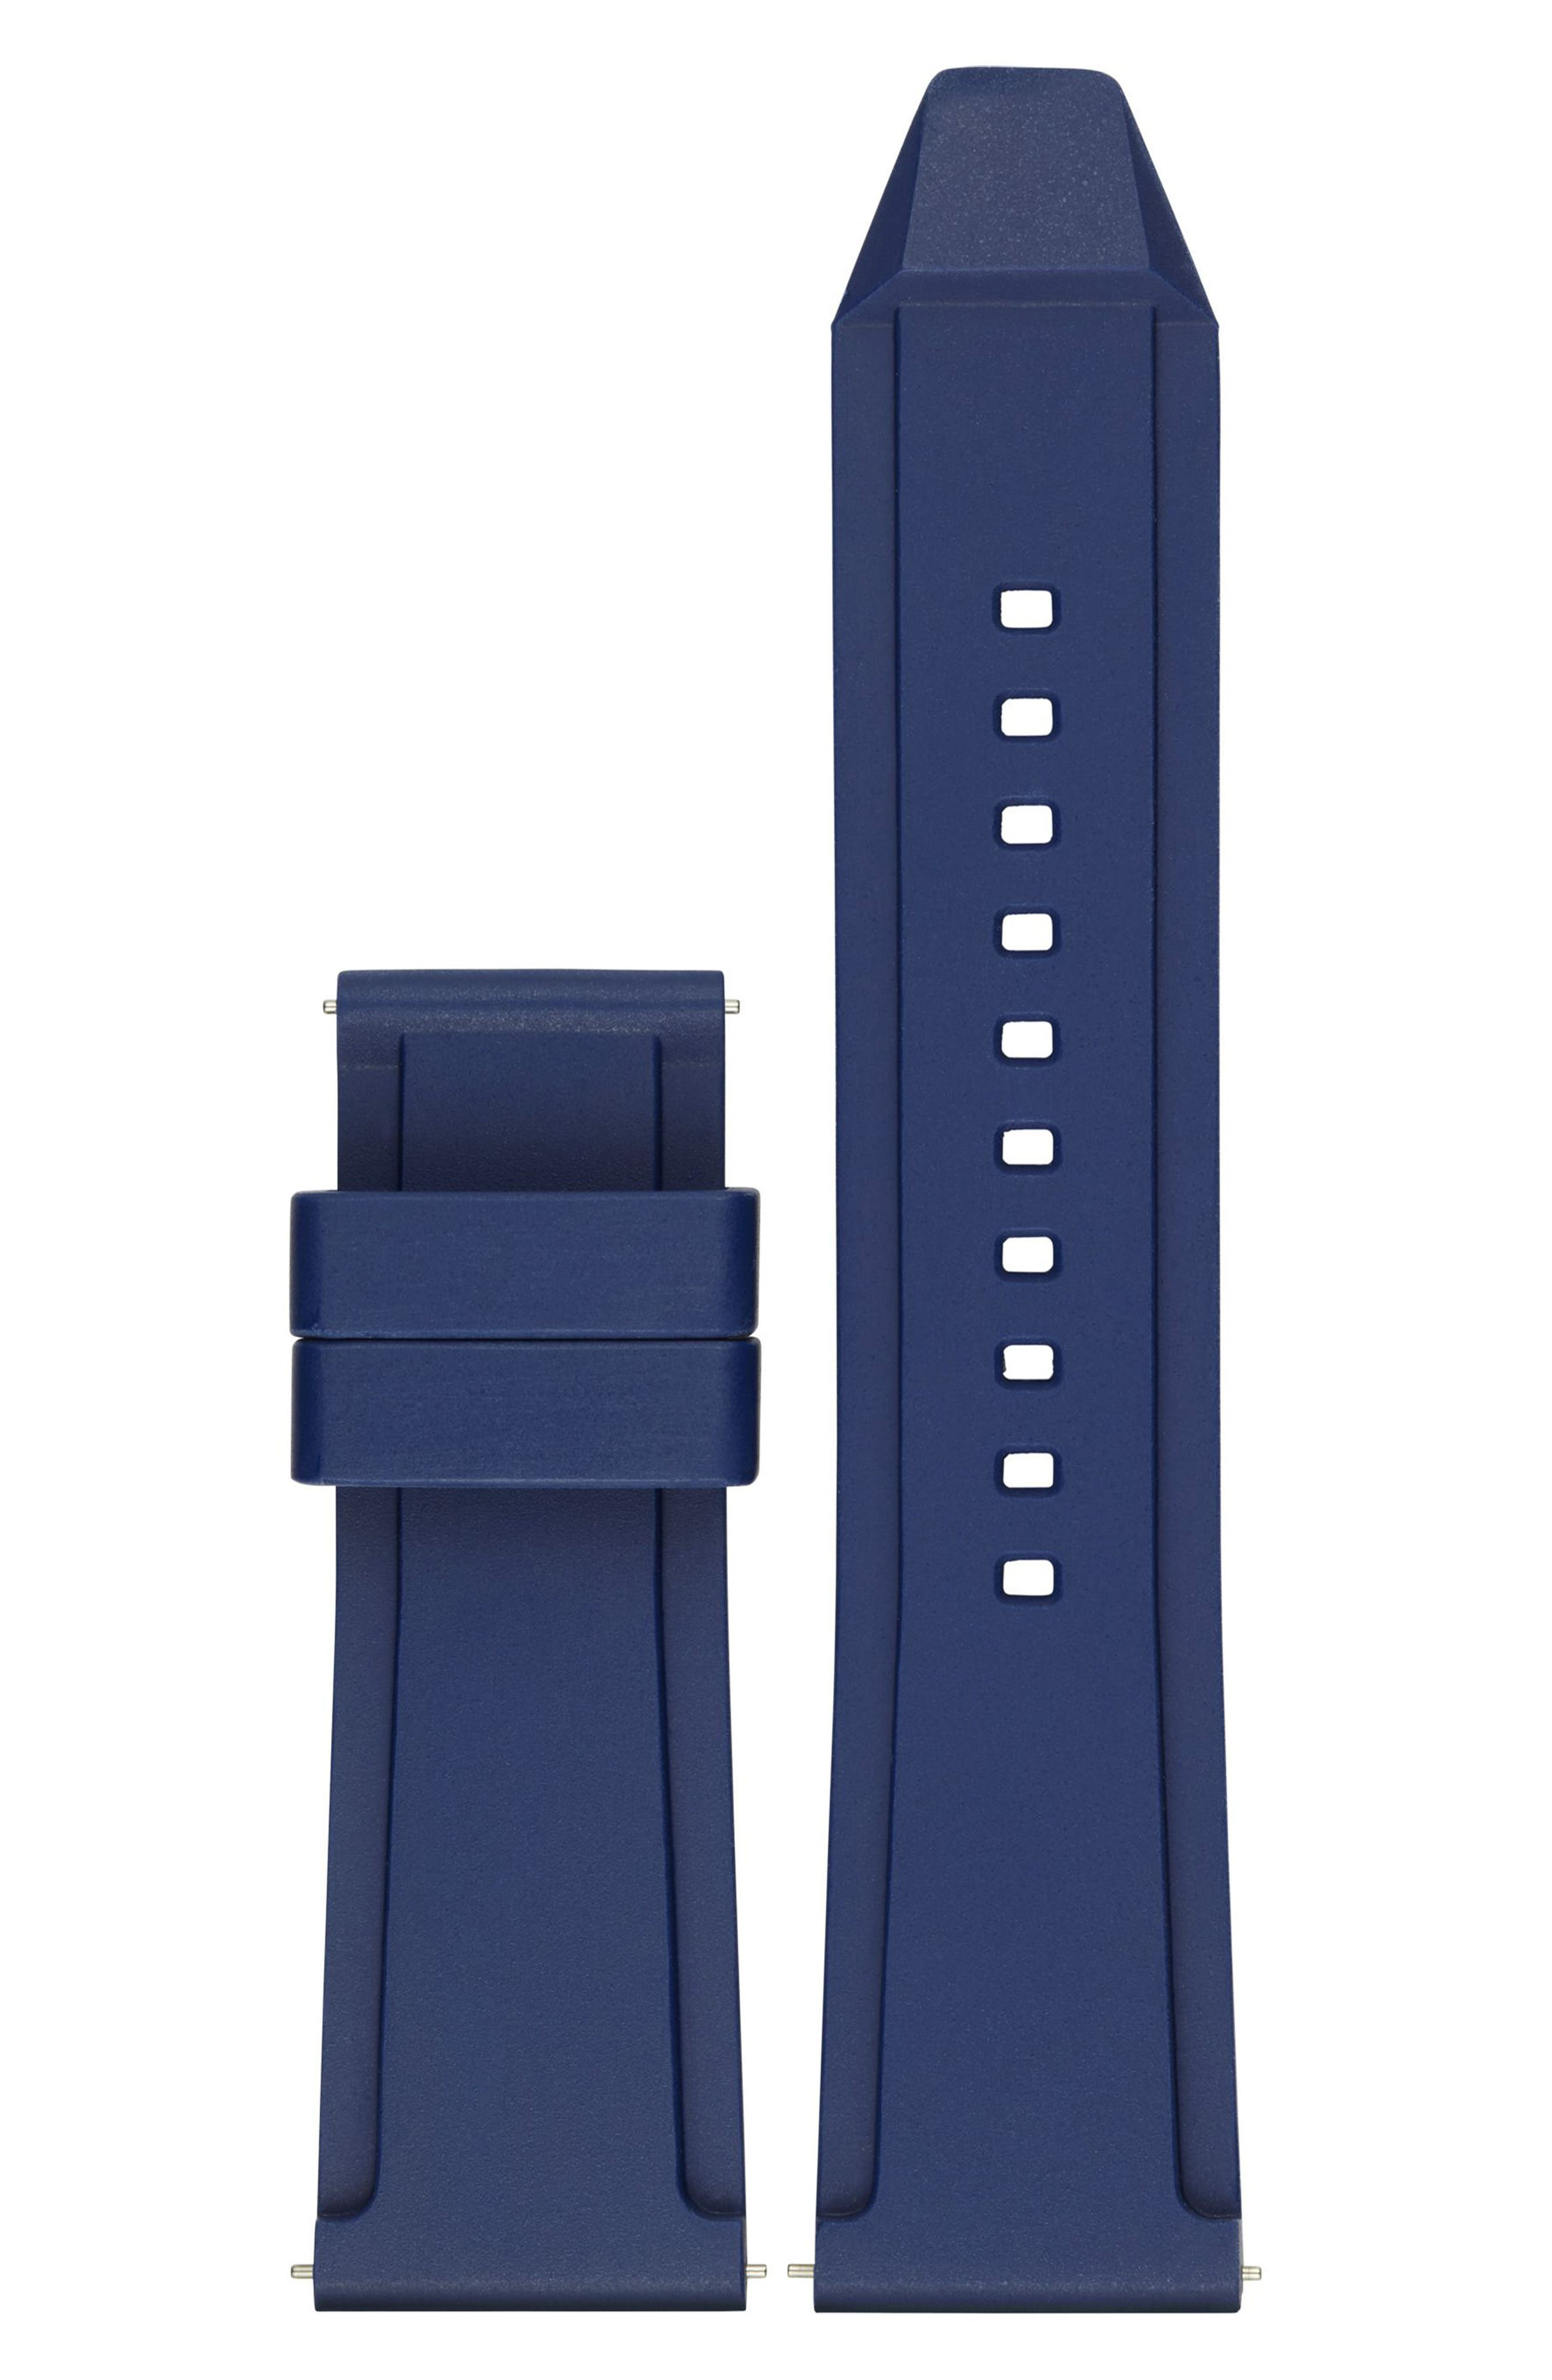 Alternate Image 1 Selected - Michael Kors Access Grayson 24mm Silicone Watch Strap